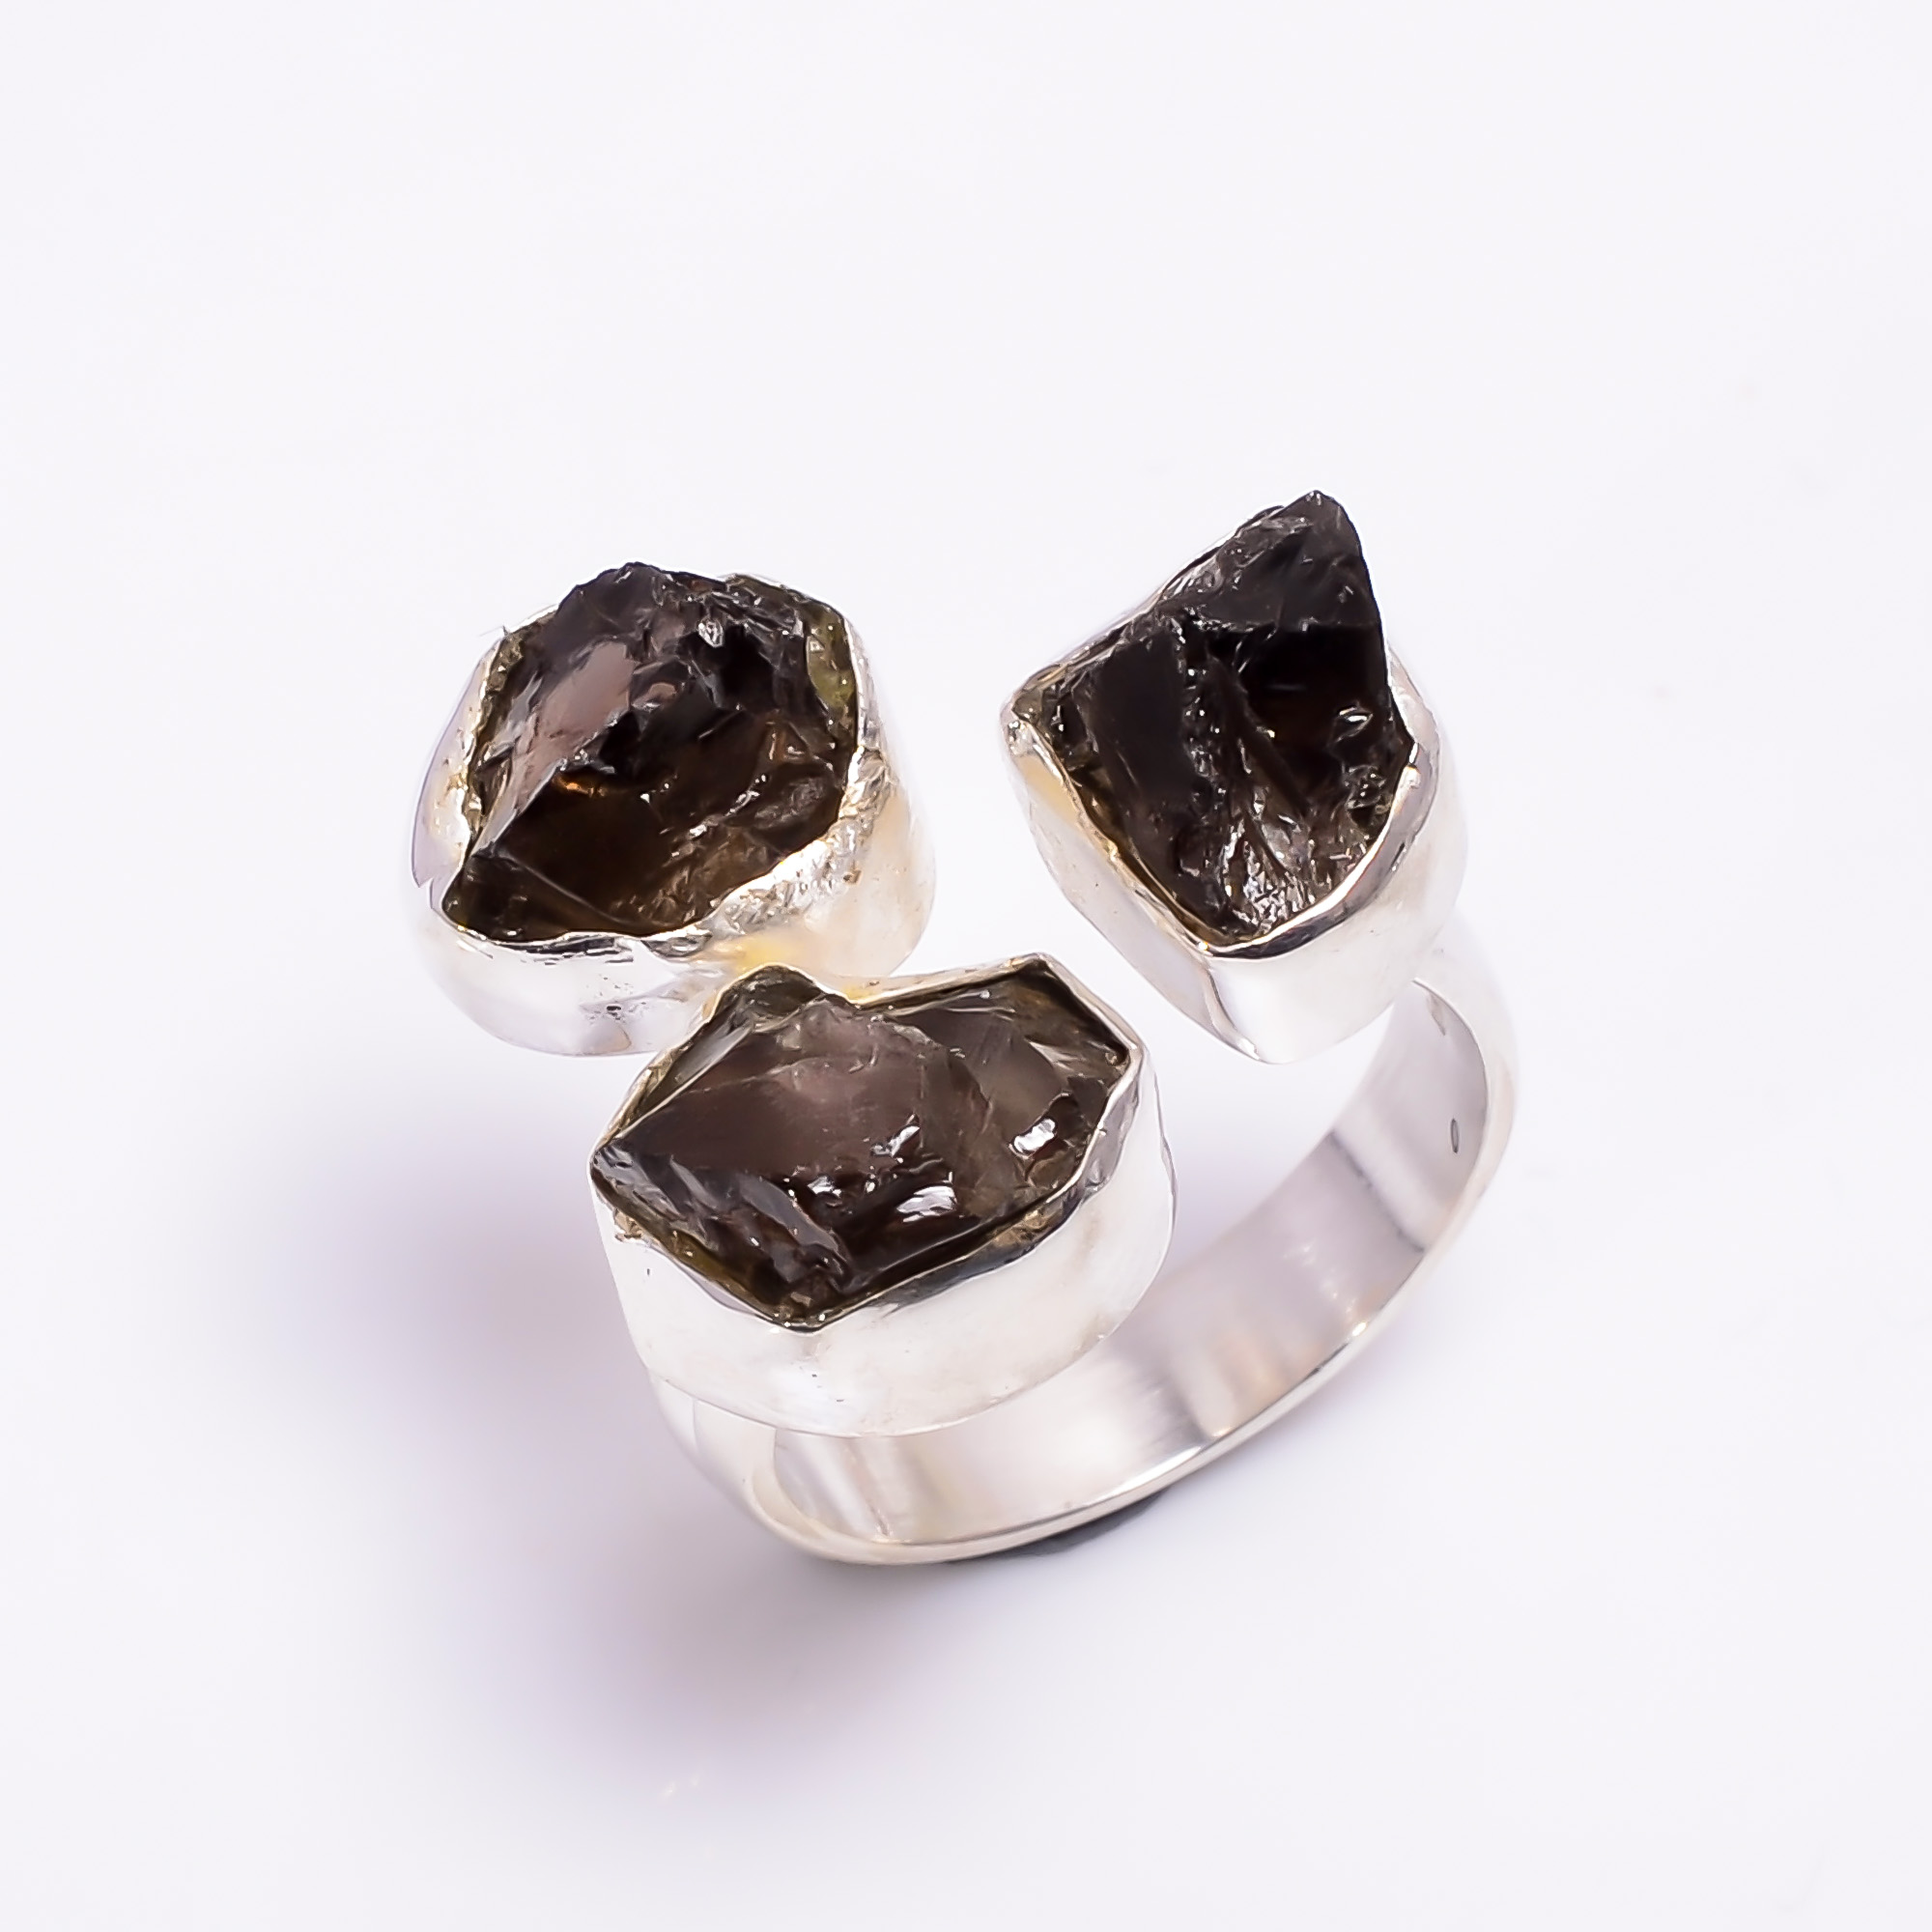 Natural Smoky Raw Gemstone 925 Sterling Silver Adjustable Ring